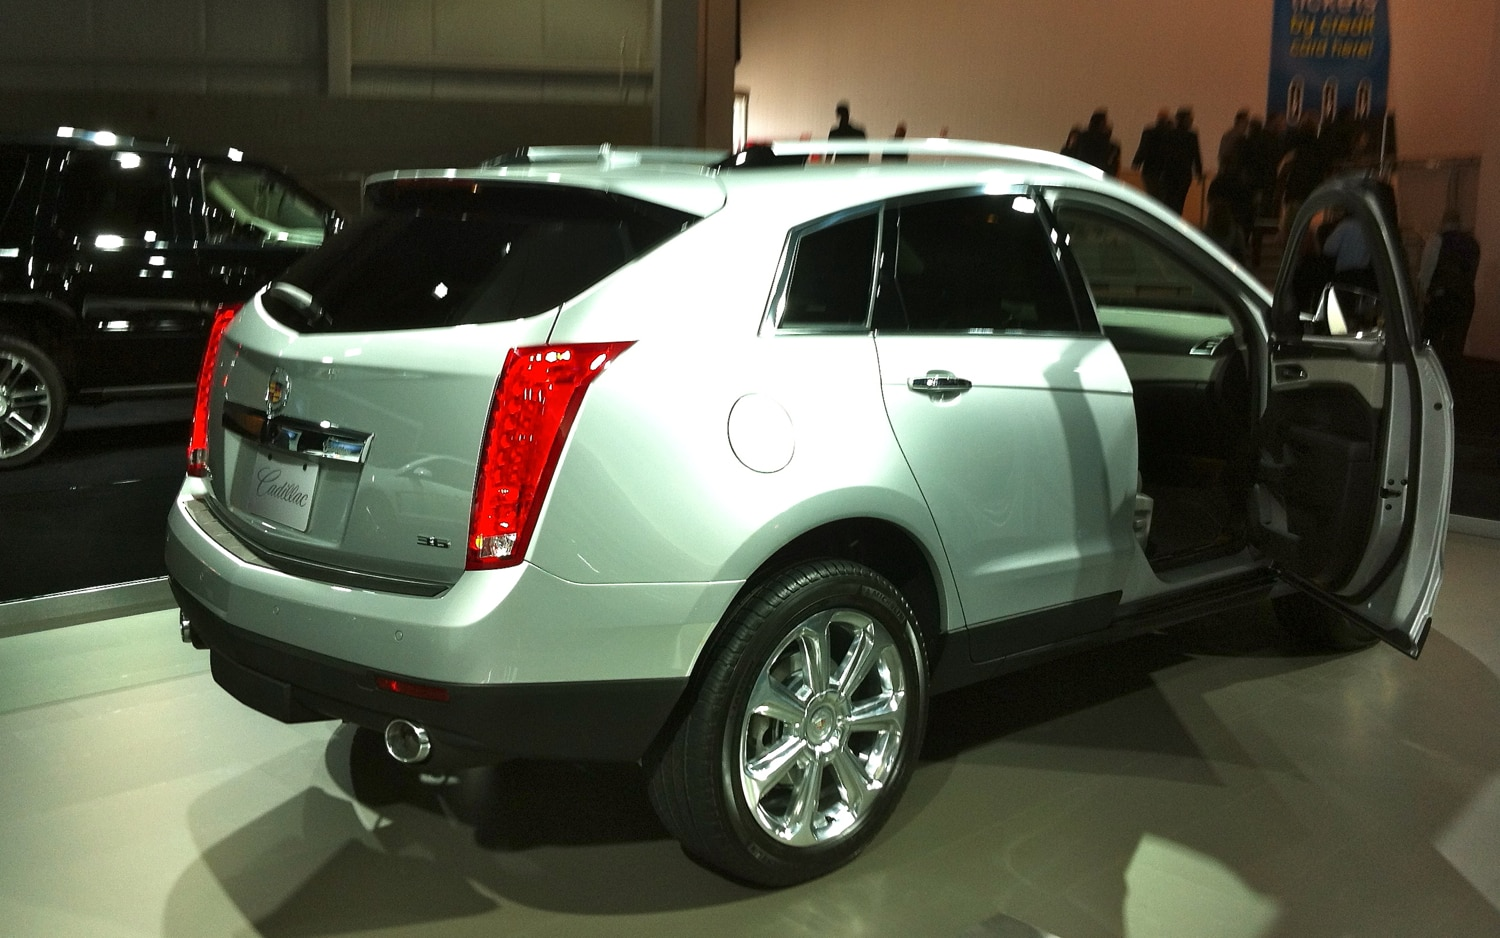 New York 2012 2013 Cadillac Srx Is Forward Looking With